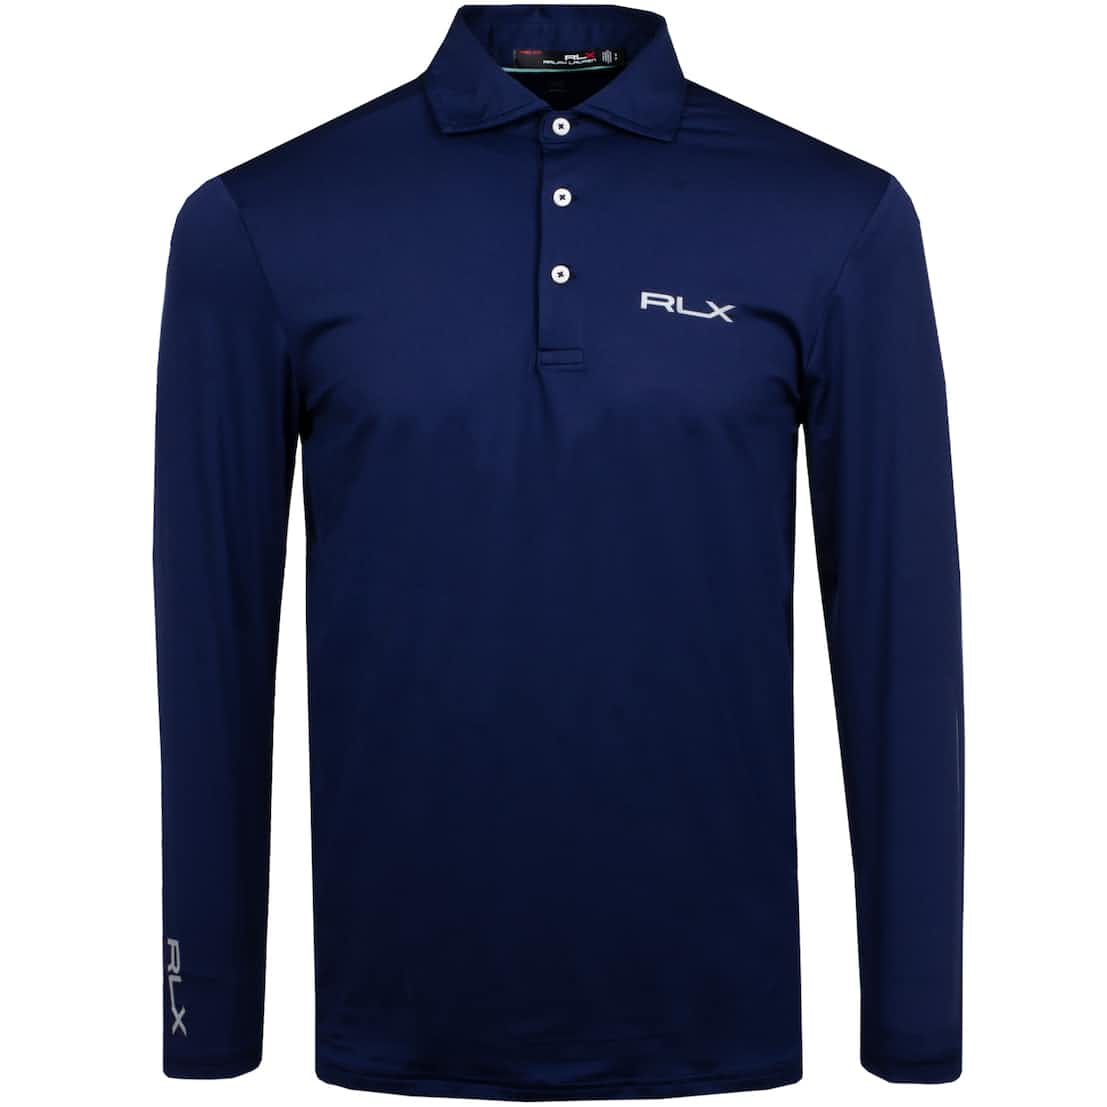 LS Solid Airflow Jersey Navy - SS20